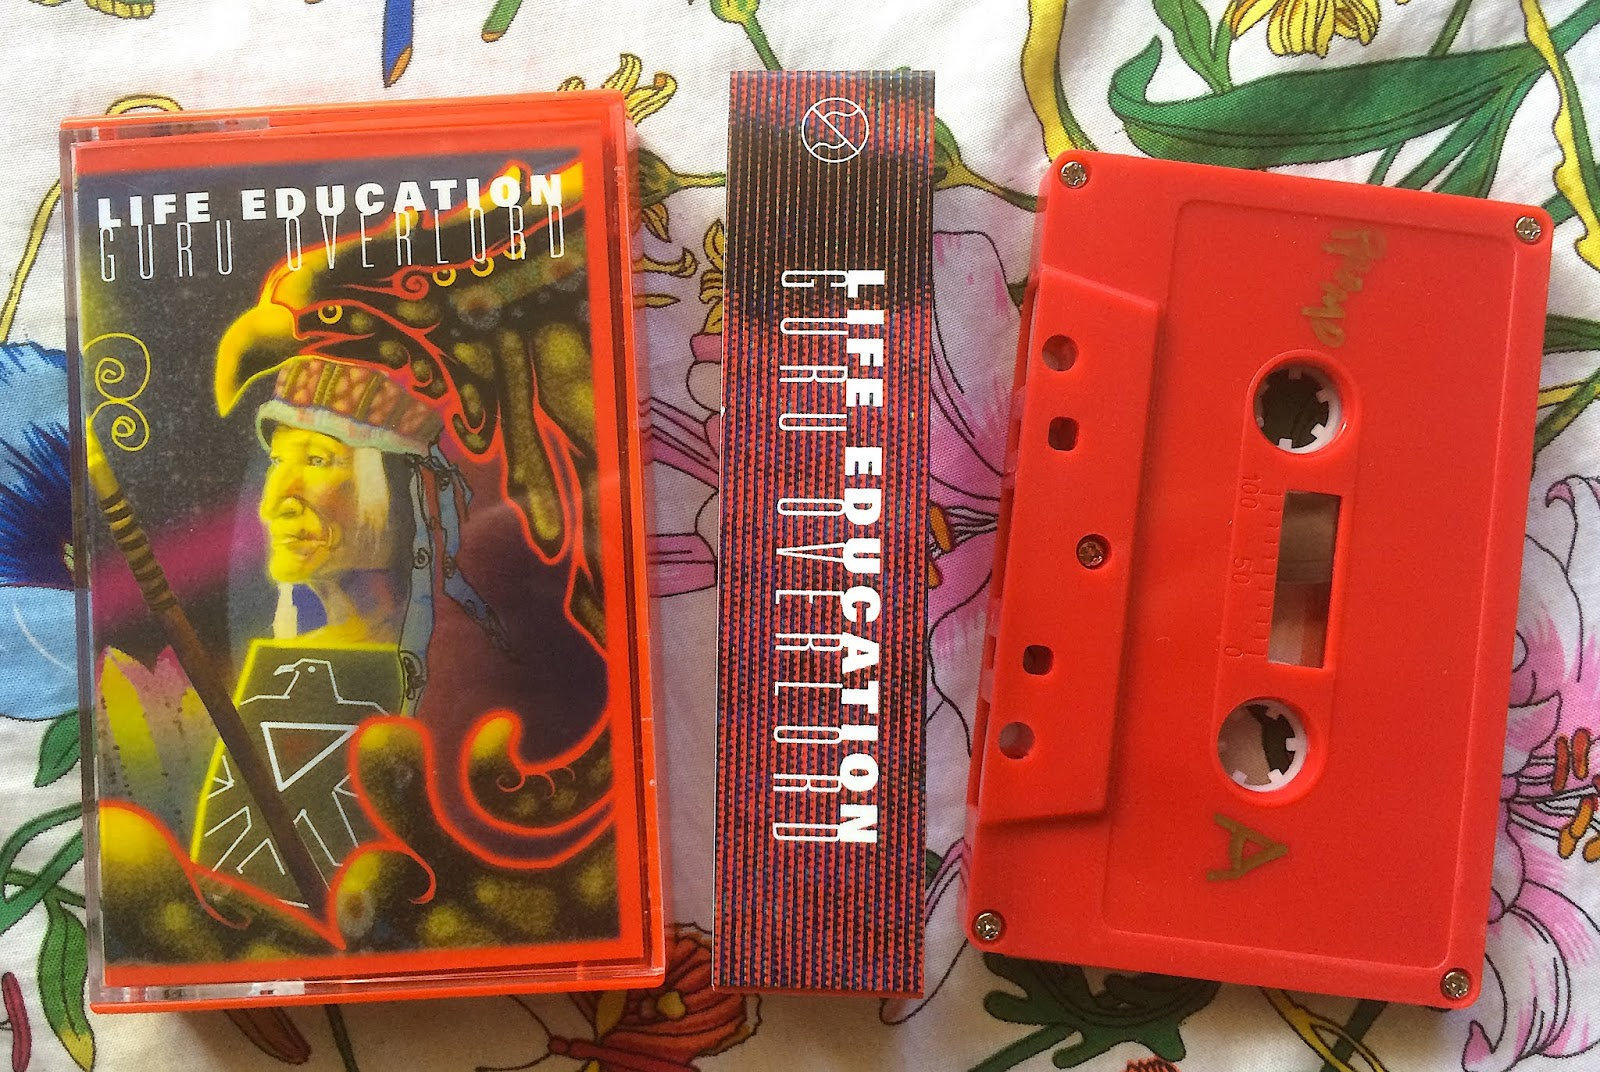 ETHEREAL MOTHER TAPES